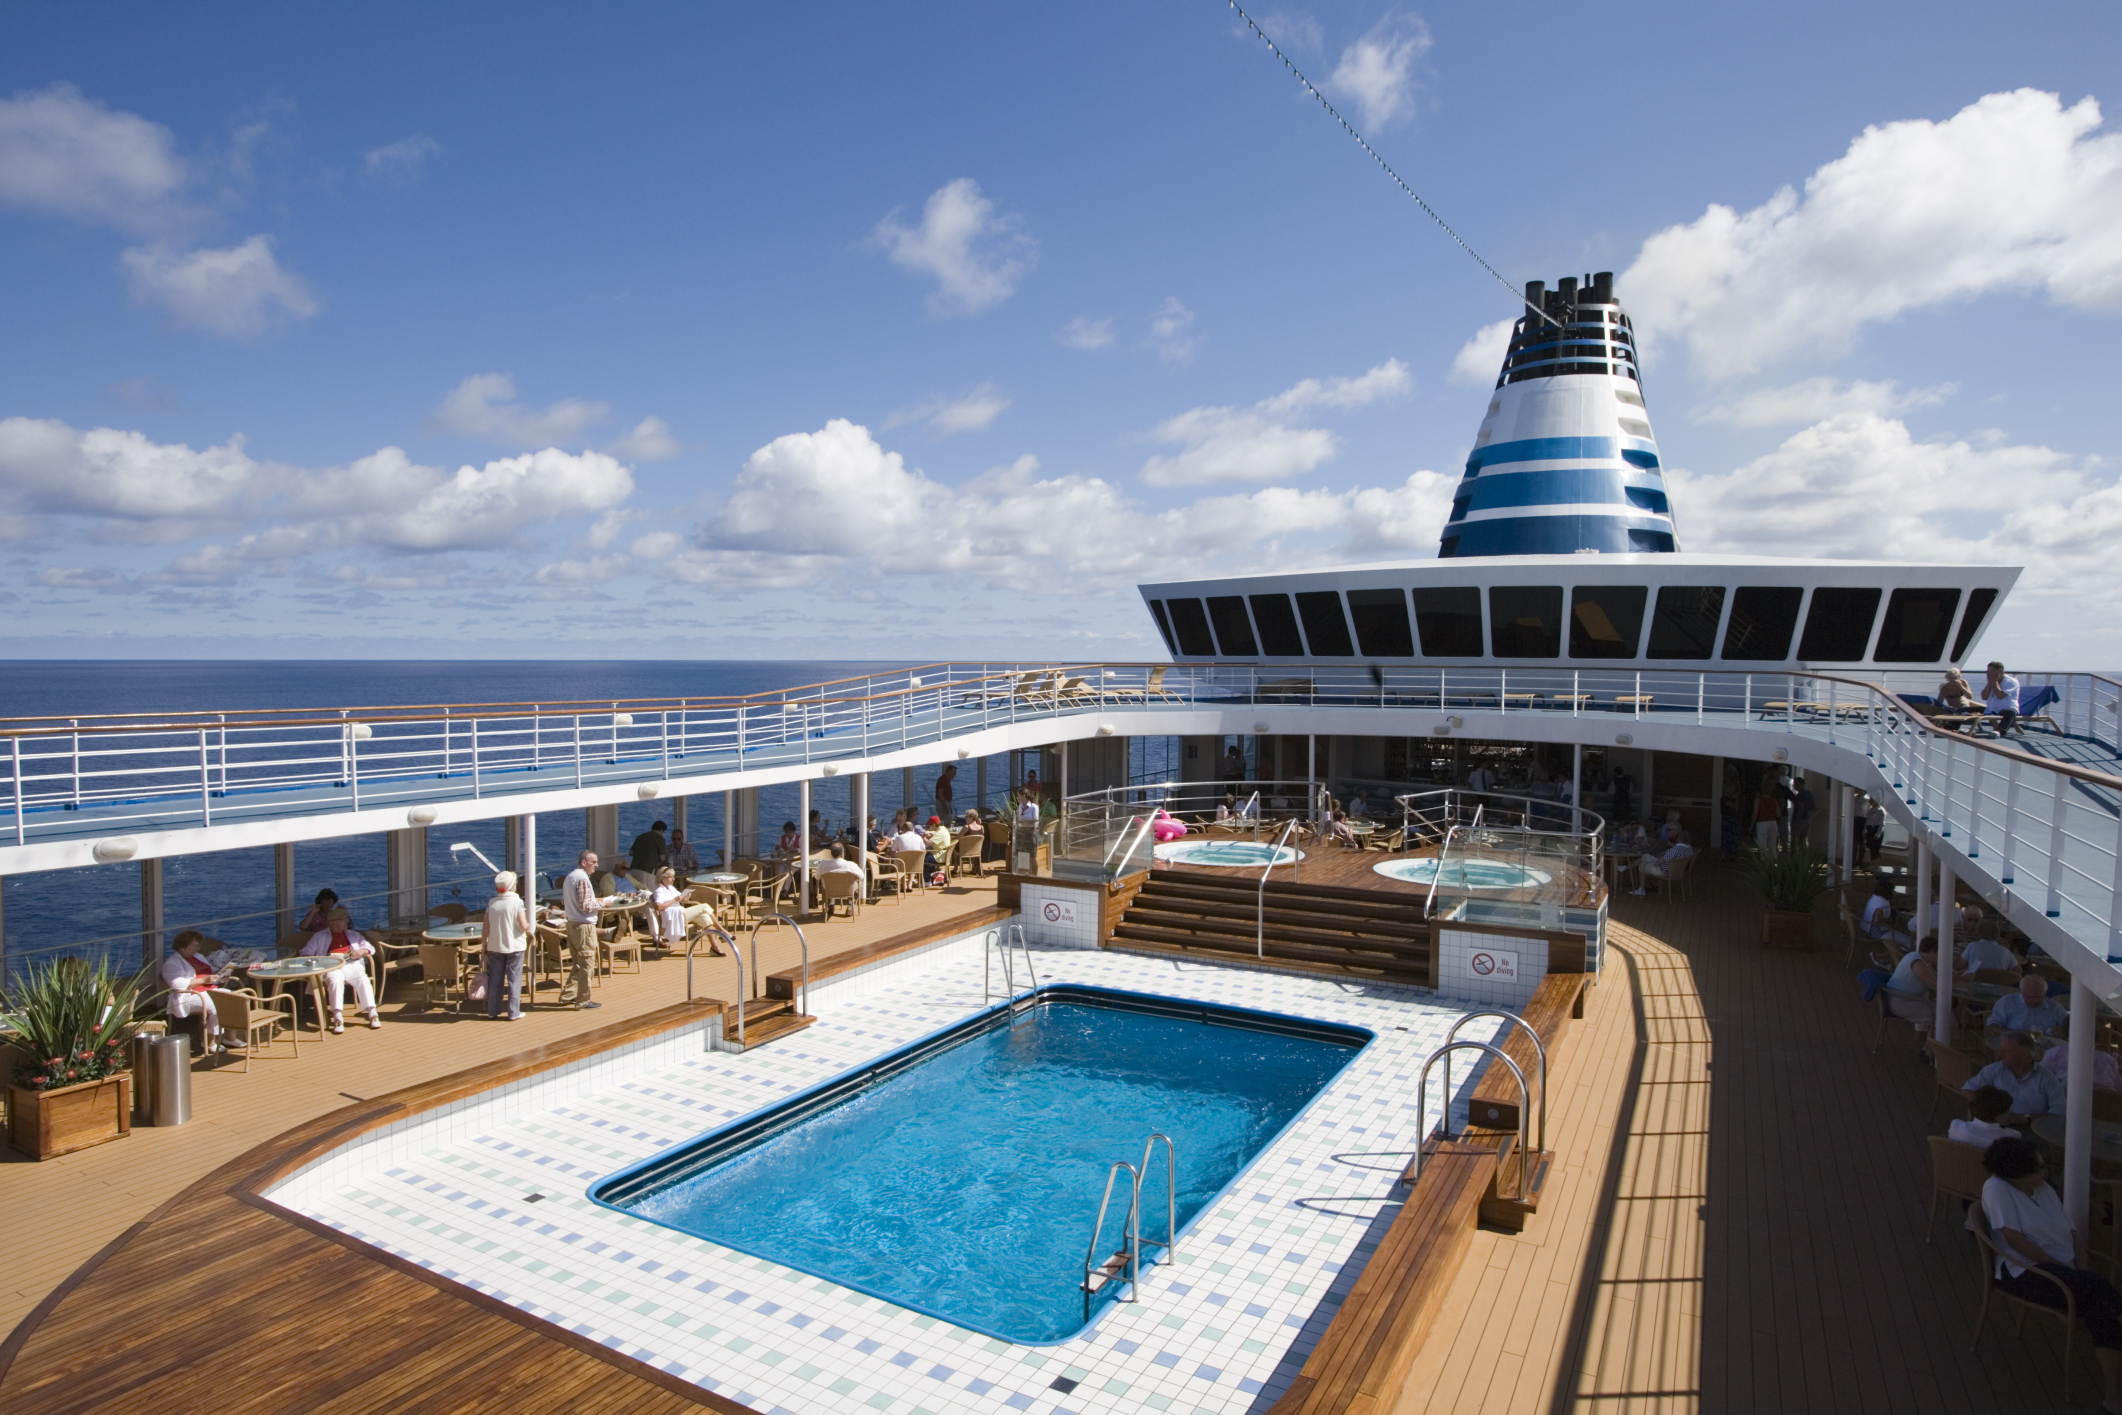 9 Things You Should Never Do on a Cruise